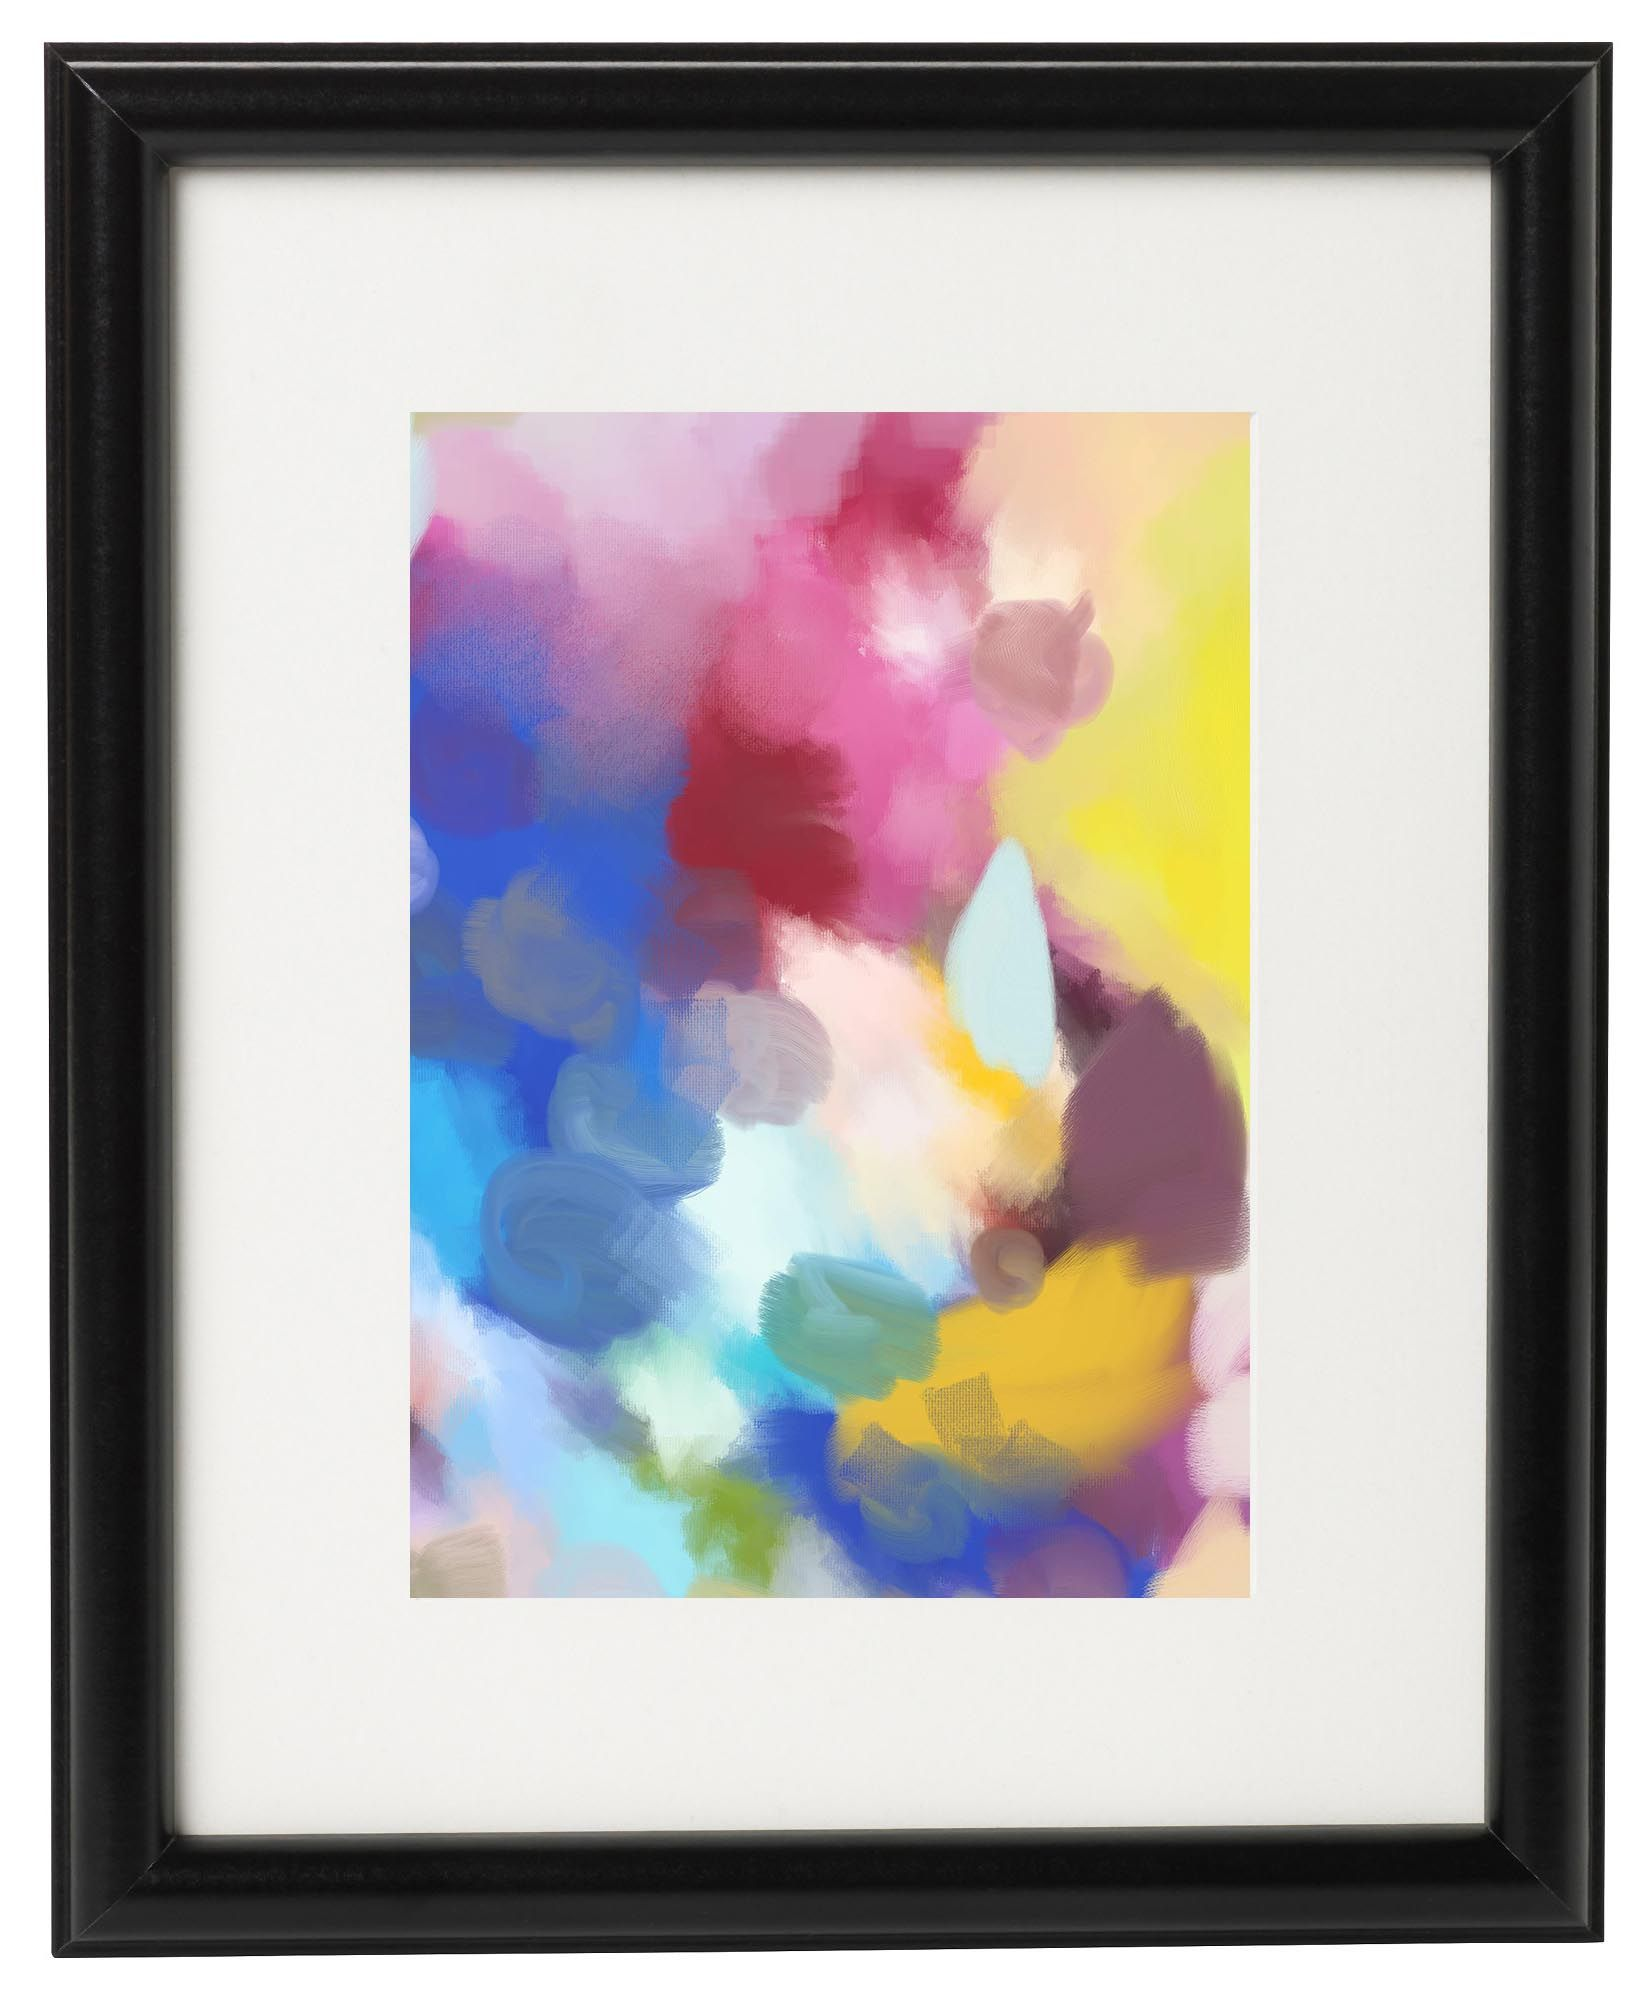 Gallery Wall Free Printables Download All 8 Colourful Abstract